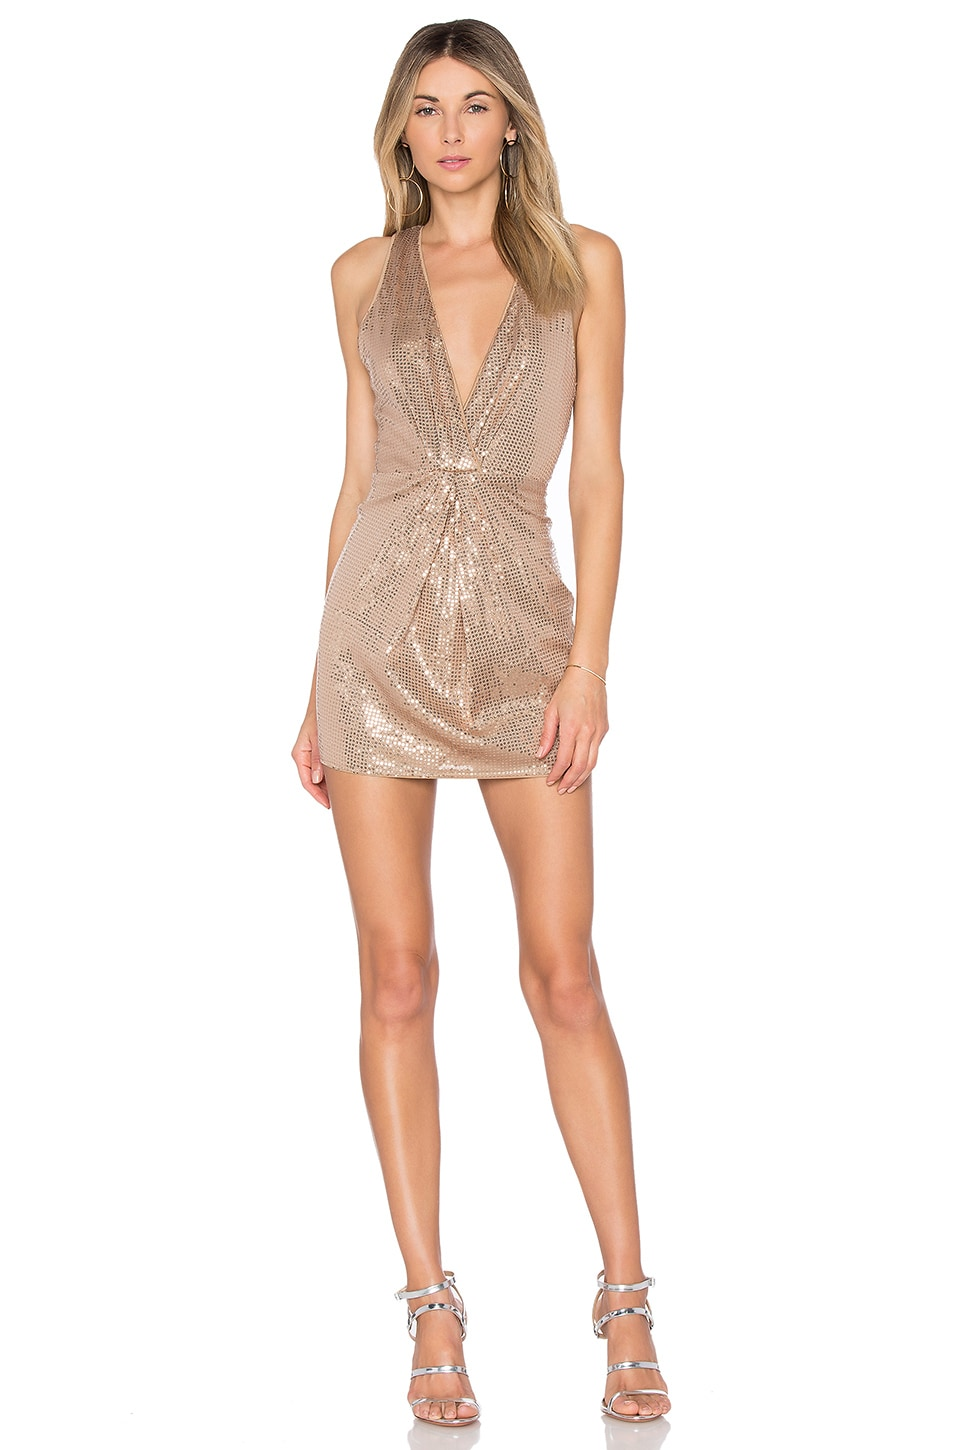 X by NBD Genevieve Dress in Taupe